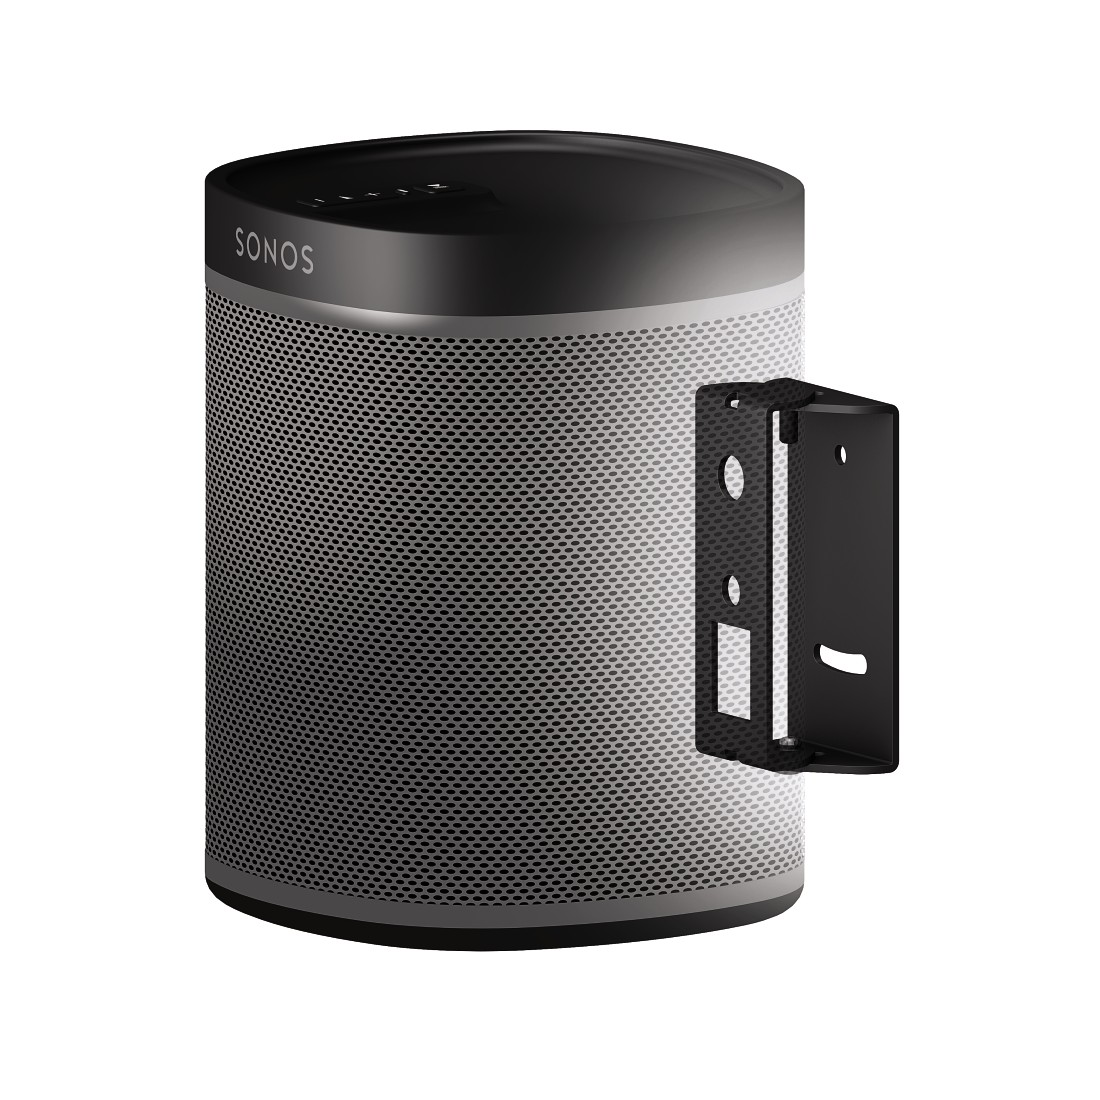 awx2 High-Res Appliance 2 - Hama, Muurbevestiging voor Sonos PLAY 1 swivel zwart